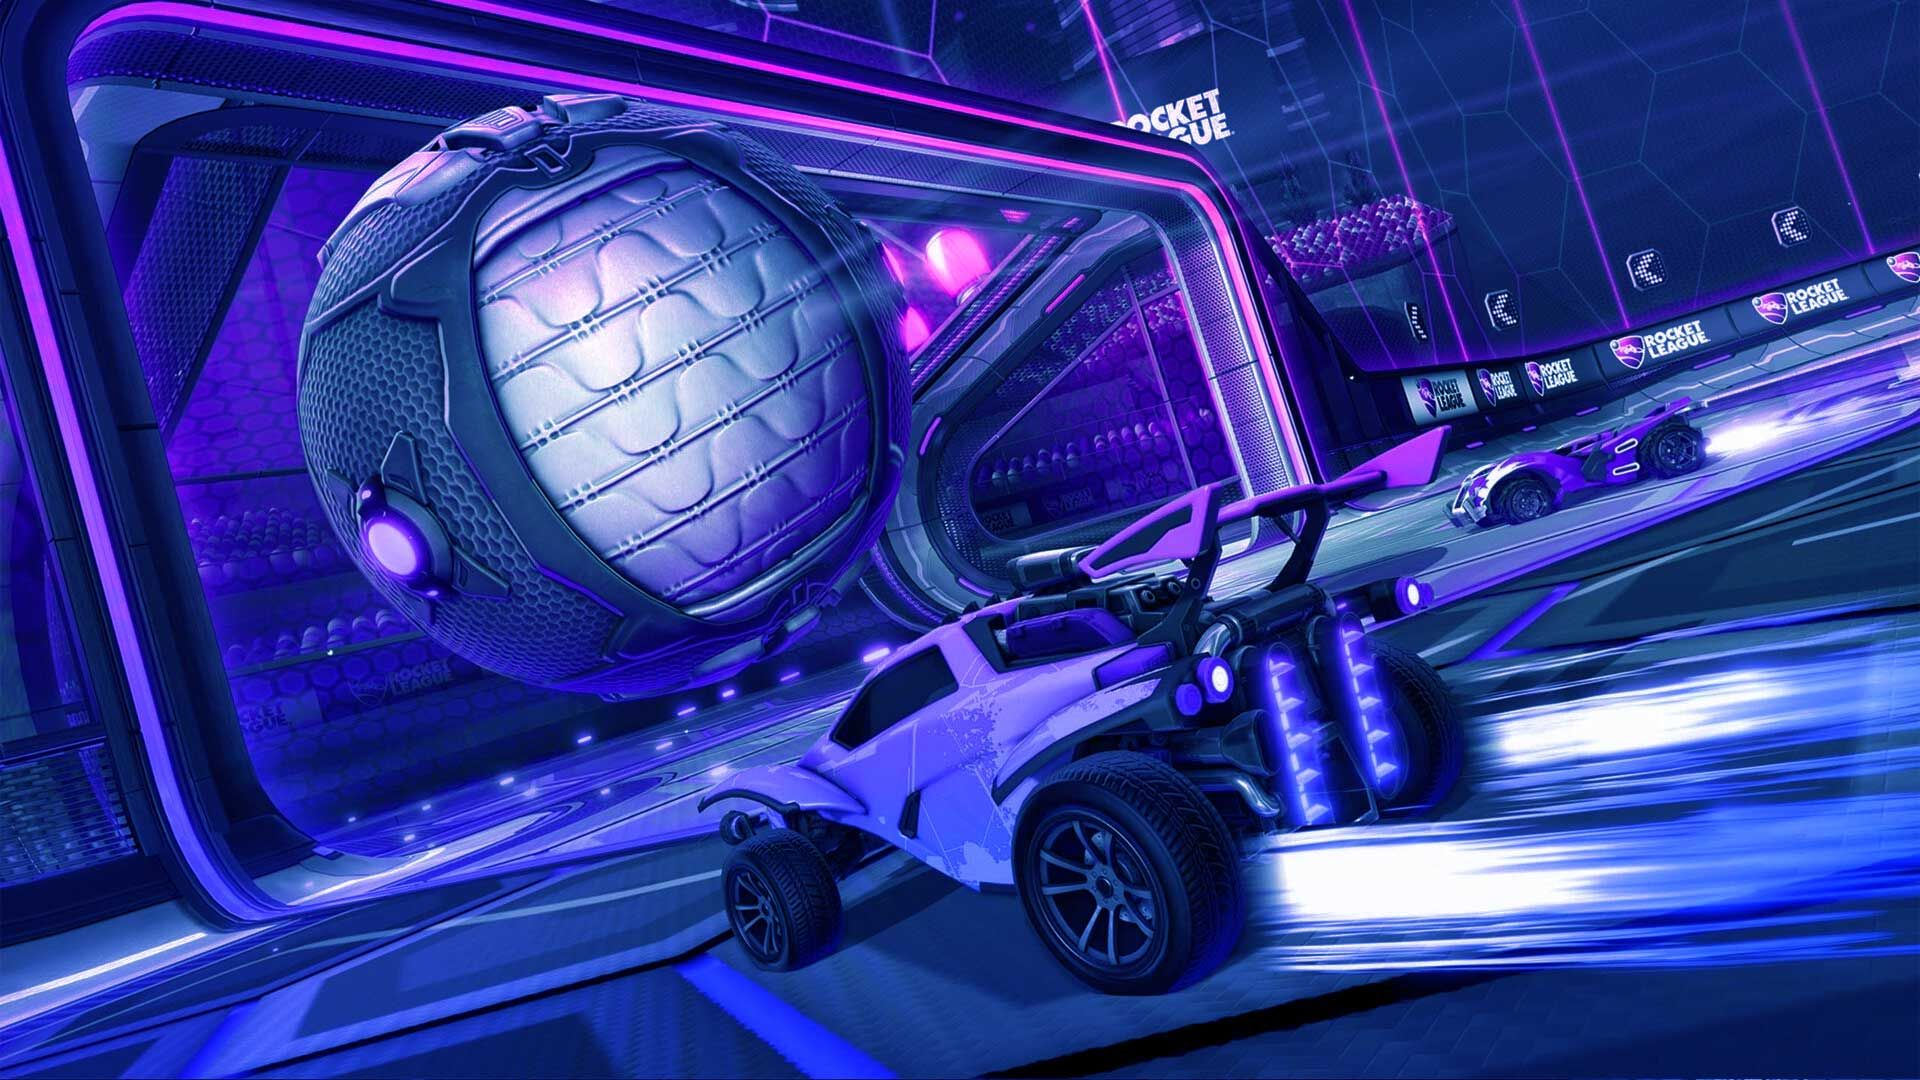 Rocket League Developer Has Been Acquired By Epic Games Eneba Rocket League Rocket League Wallpaper Epic Games